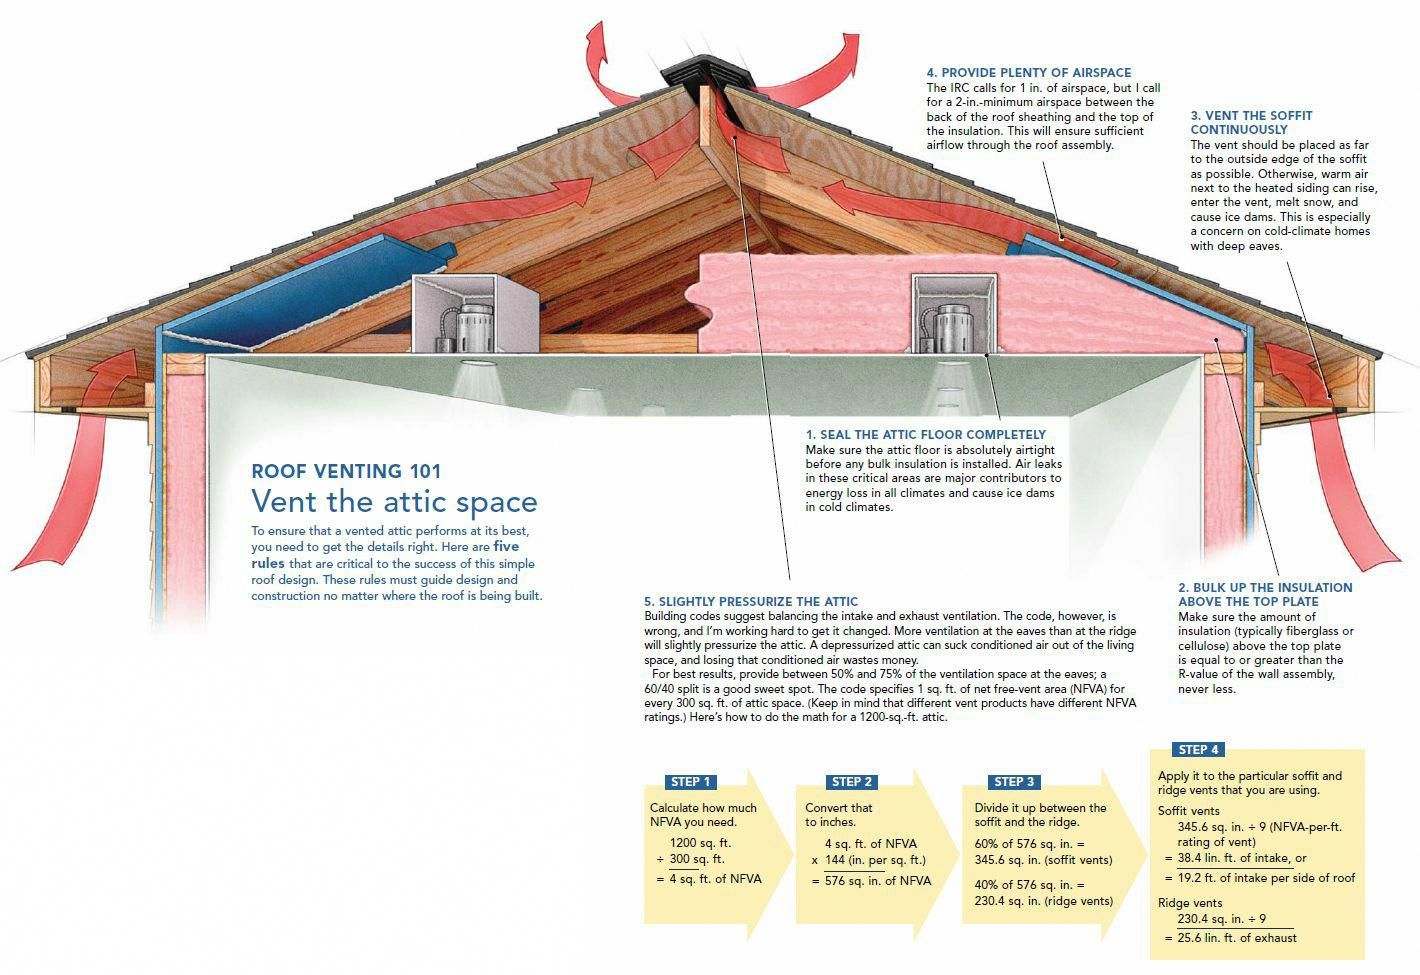 Vented Soffit S Is An Easy Way To Allow Cooler Air Into Your Attic To Replace The Hot Air Exiting Through The Attic Ventilation Attic Renovation Attic Remodel